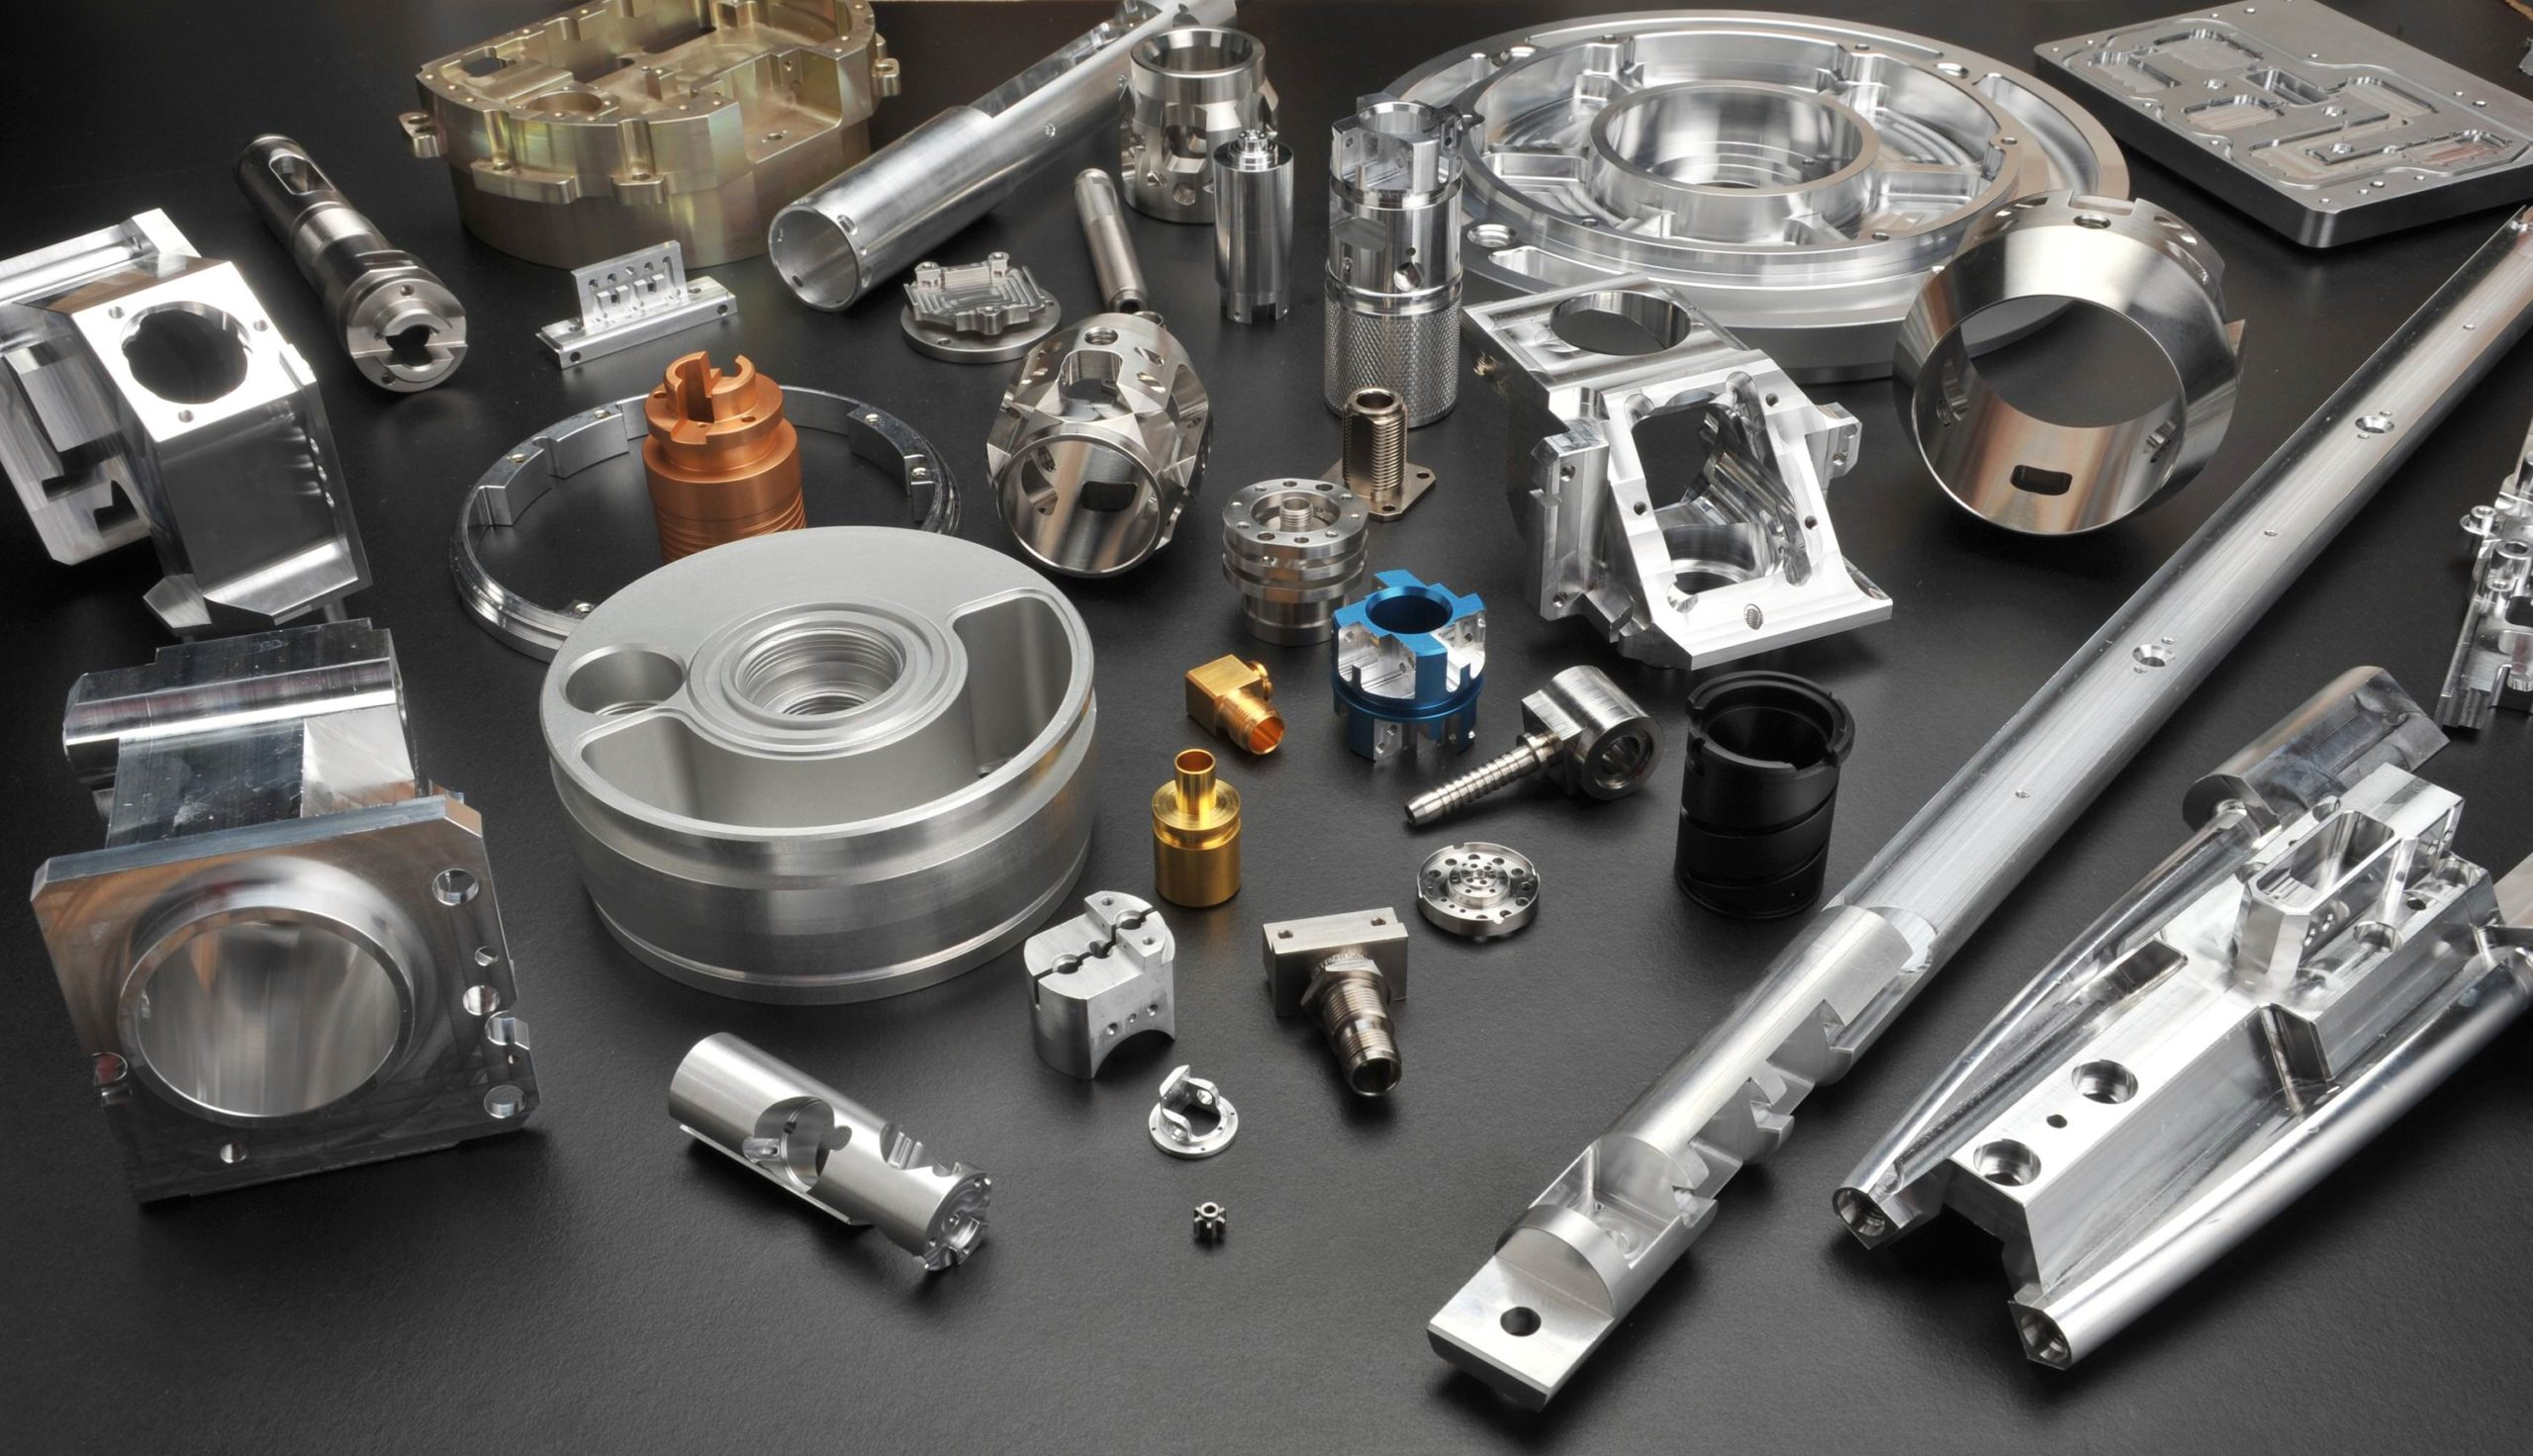 BENEFITS OF CONTRACTING CNC MACHINING